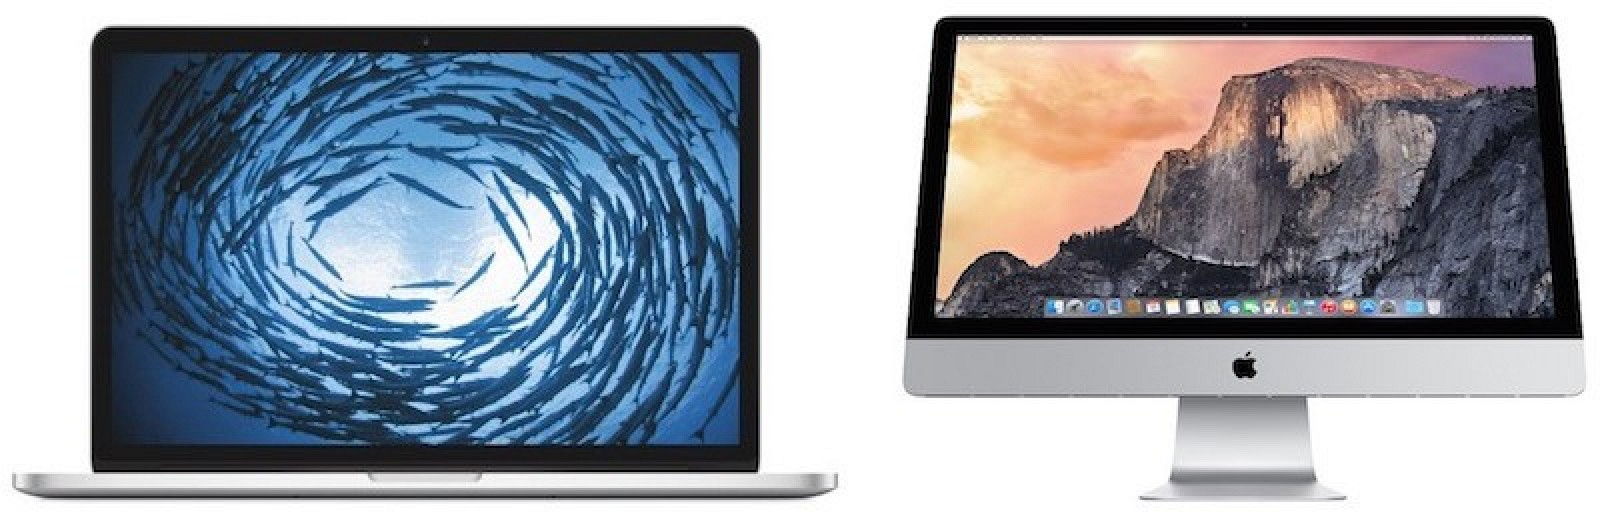 apple releases new 15 inch macbook pro with force touch. Black Bedroom Furniture Sets. Home Design Ideas